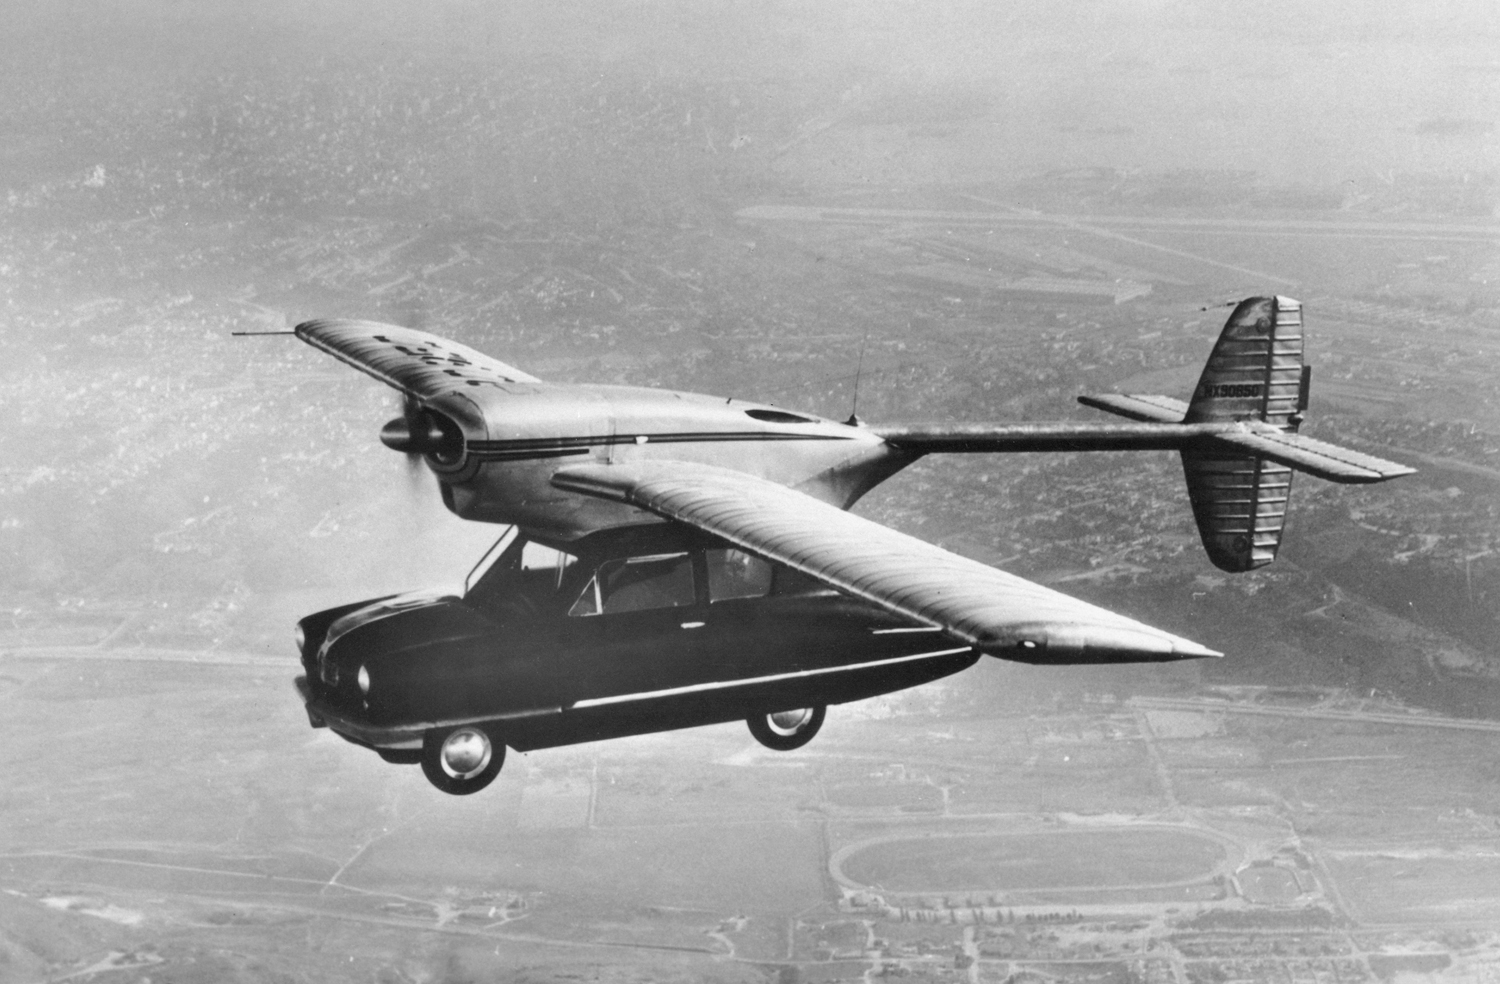 Max Tellers Favorite Flying Cars. www.salemhousepress.com